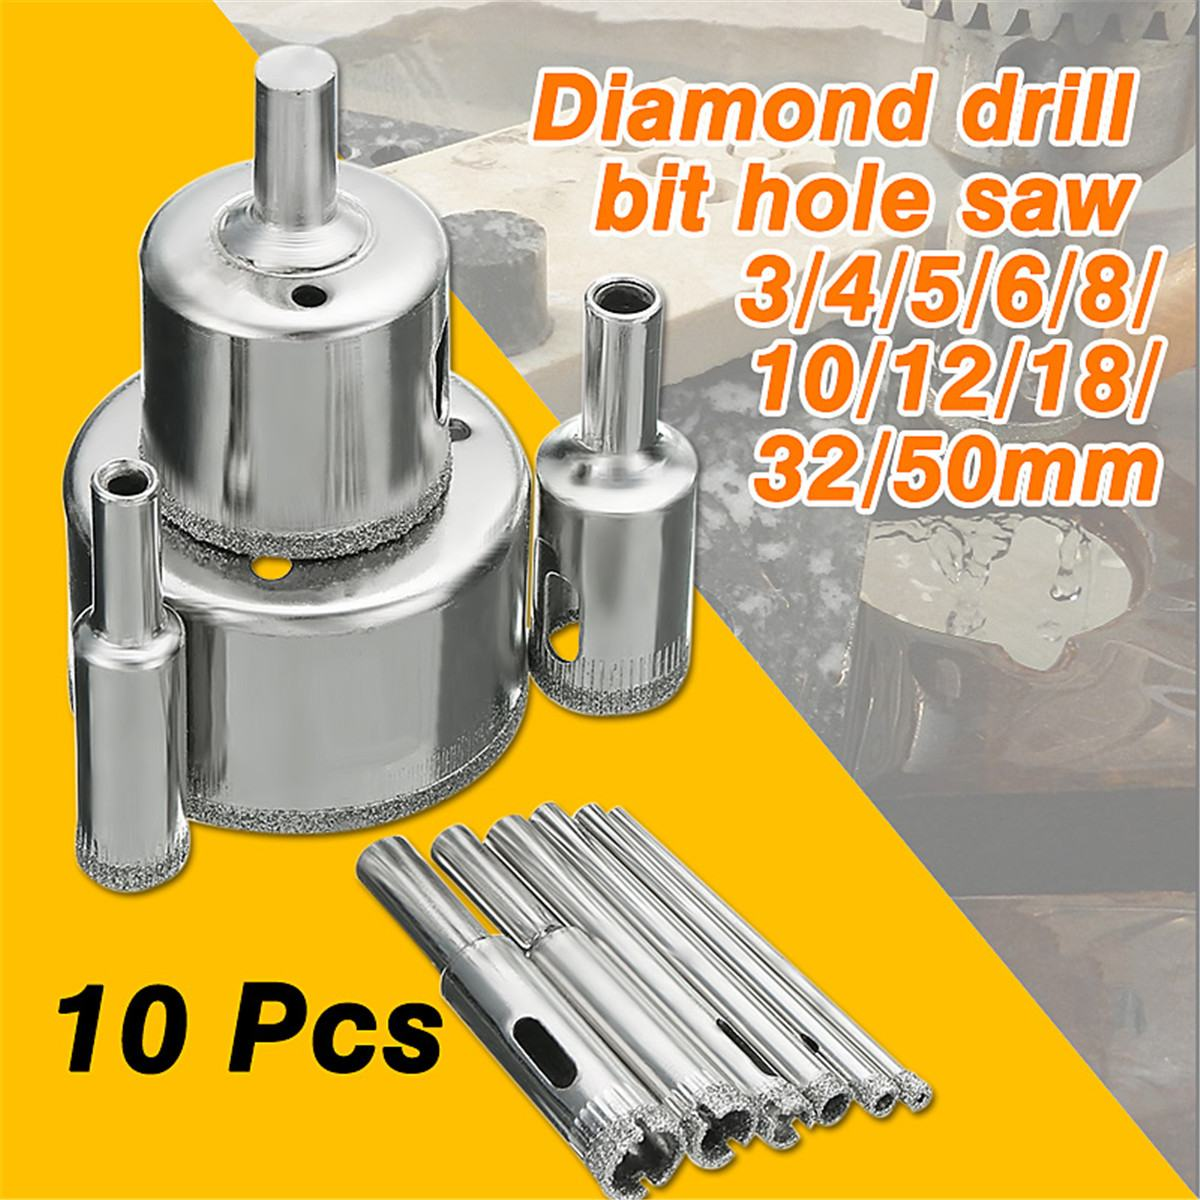 10Pcs Diamond Coated Drill Bits 3-50mm Hole Saw Cutter Set For Glass Marble Granite